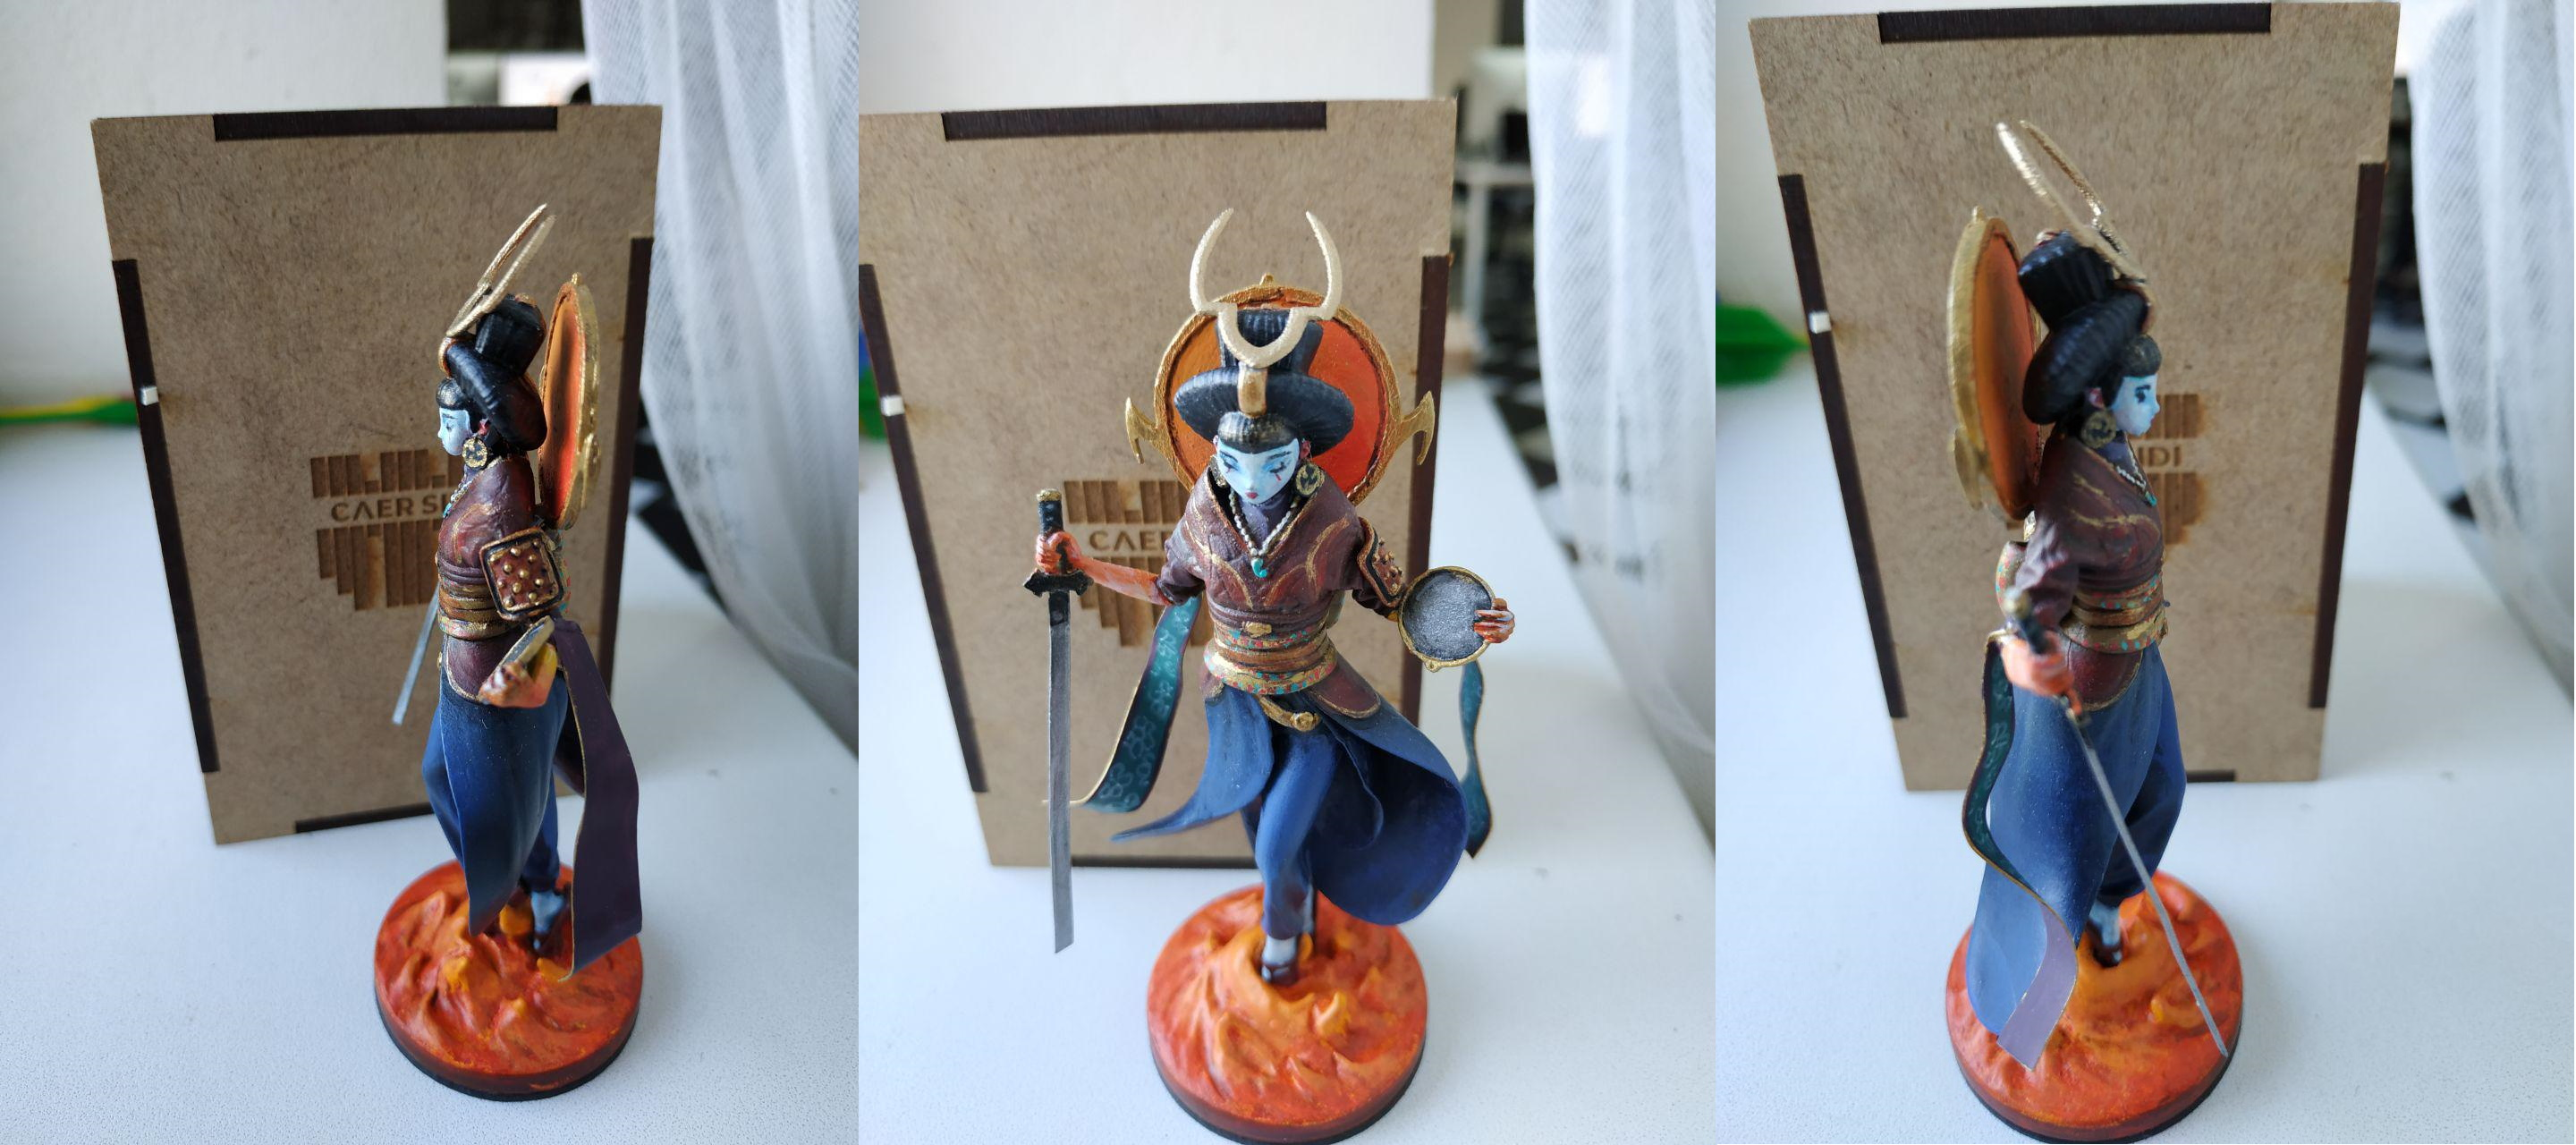 Amaterasu - a phygital figurine on Caer Sidi. It's a character from the game Altar: the War of Gods